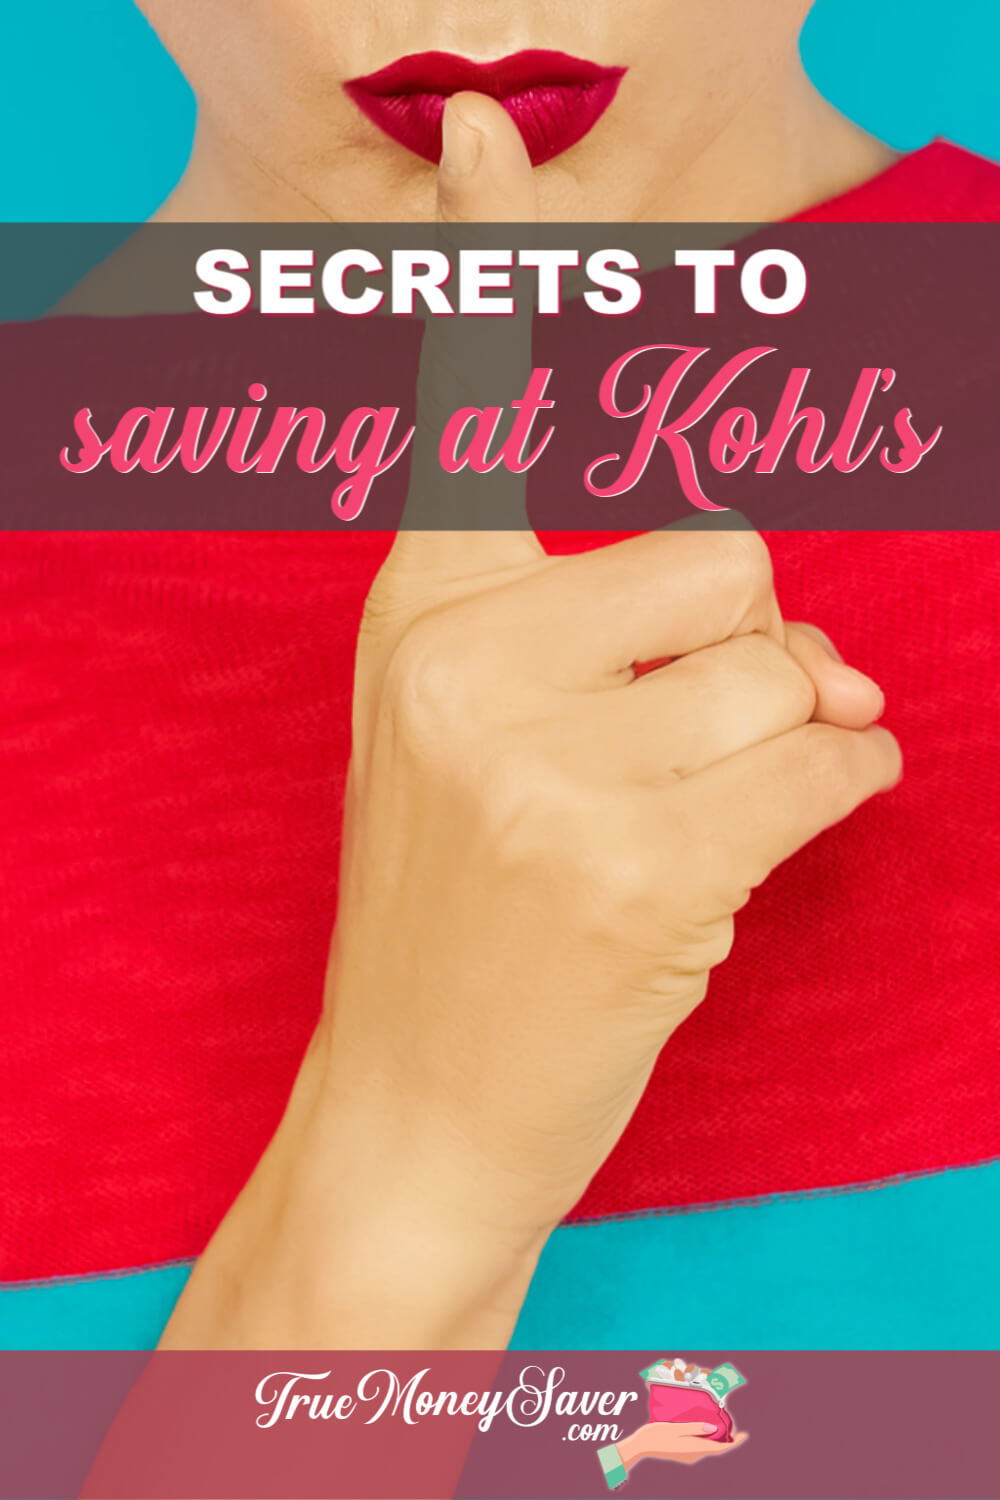 Looking for how to save at Kohl\'s? Then you need these 20+ secret ways for saving at Kohl\'s! From using Kohl\'s coupons, to finding the best Kohl\'s deals and using these secret Kohl\'s hacks, you\'ll be saving BIG in no time! Start learning here! 